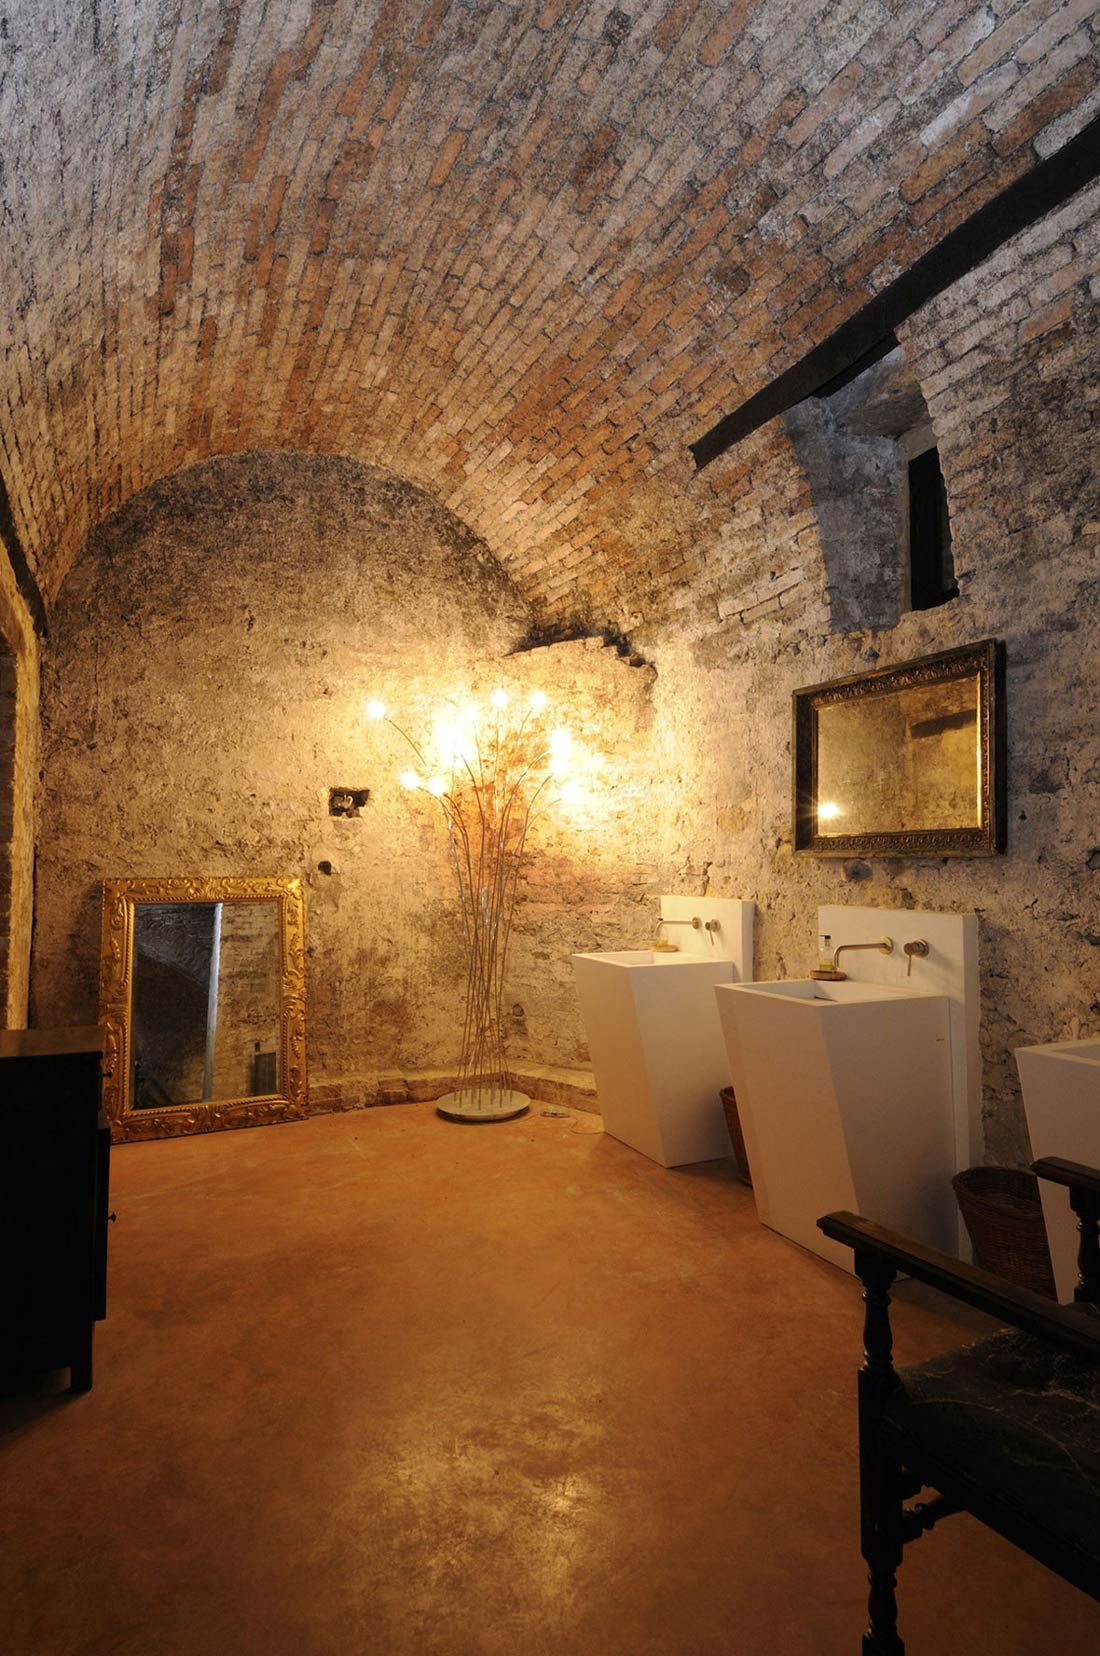 Bathroom, Sinks, Lighting, Castello di Semivicoli Hotel in Casacanditella, Italy